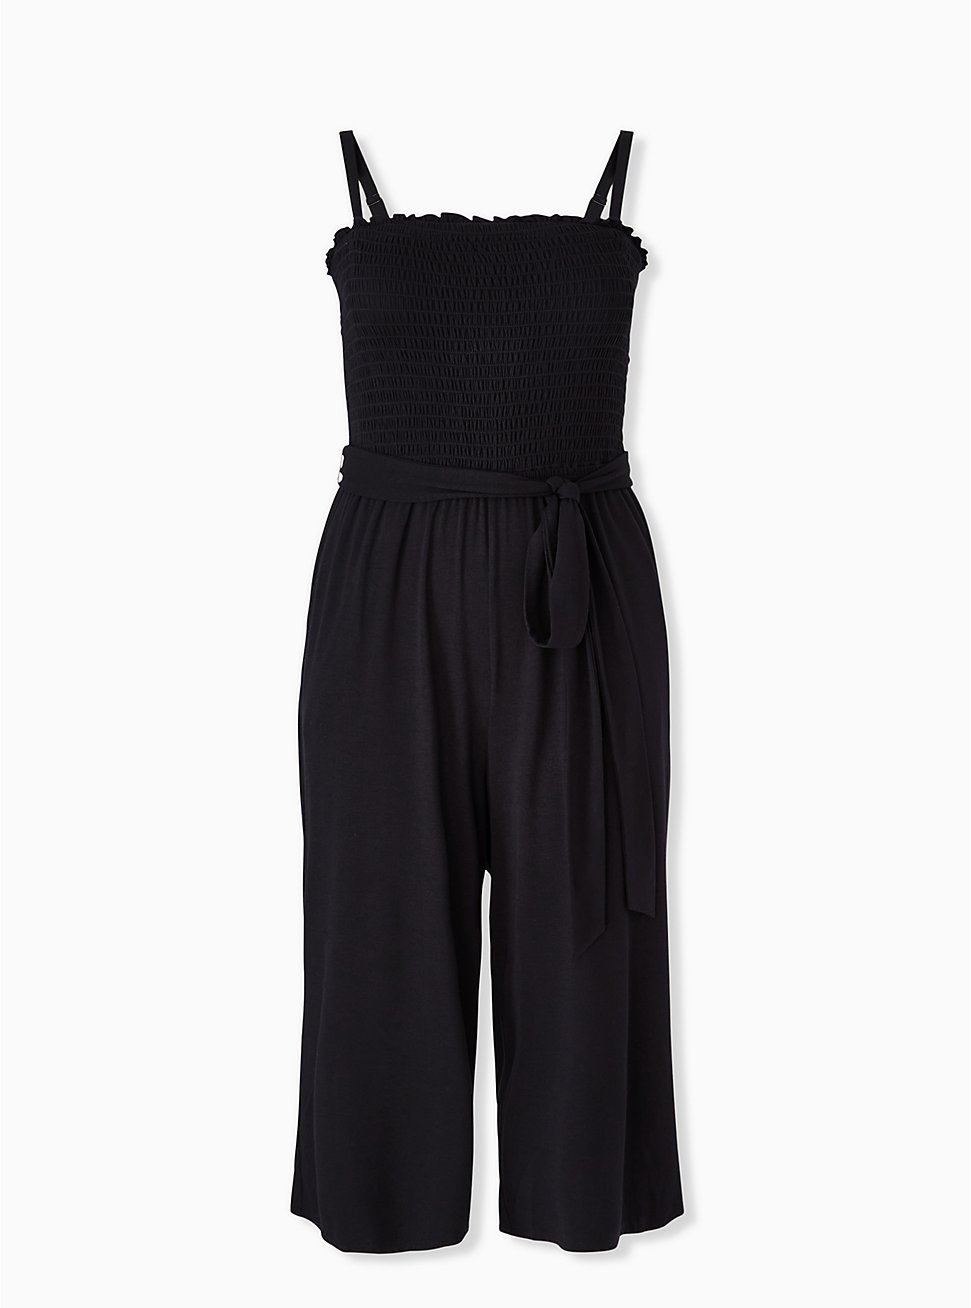 Super Soft Black Smocked Culotte Jumpsuit, DEEP BLACK, hi-res